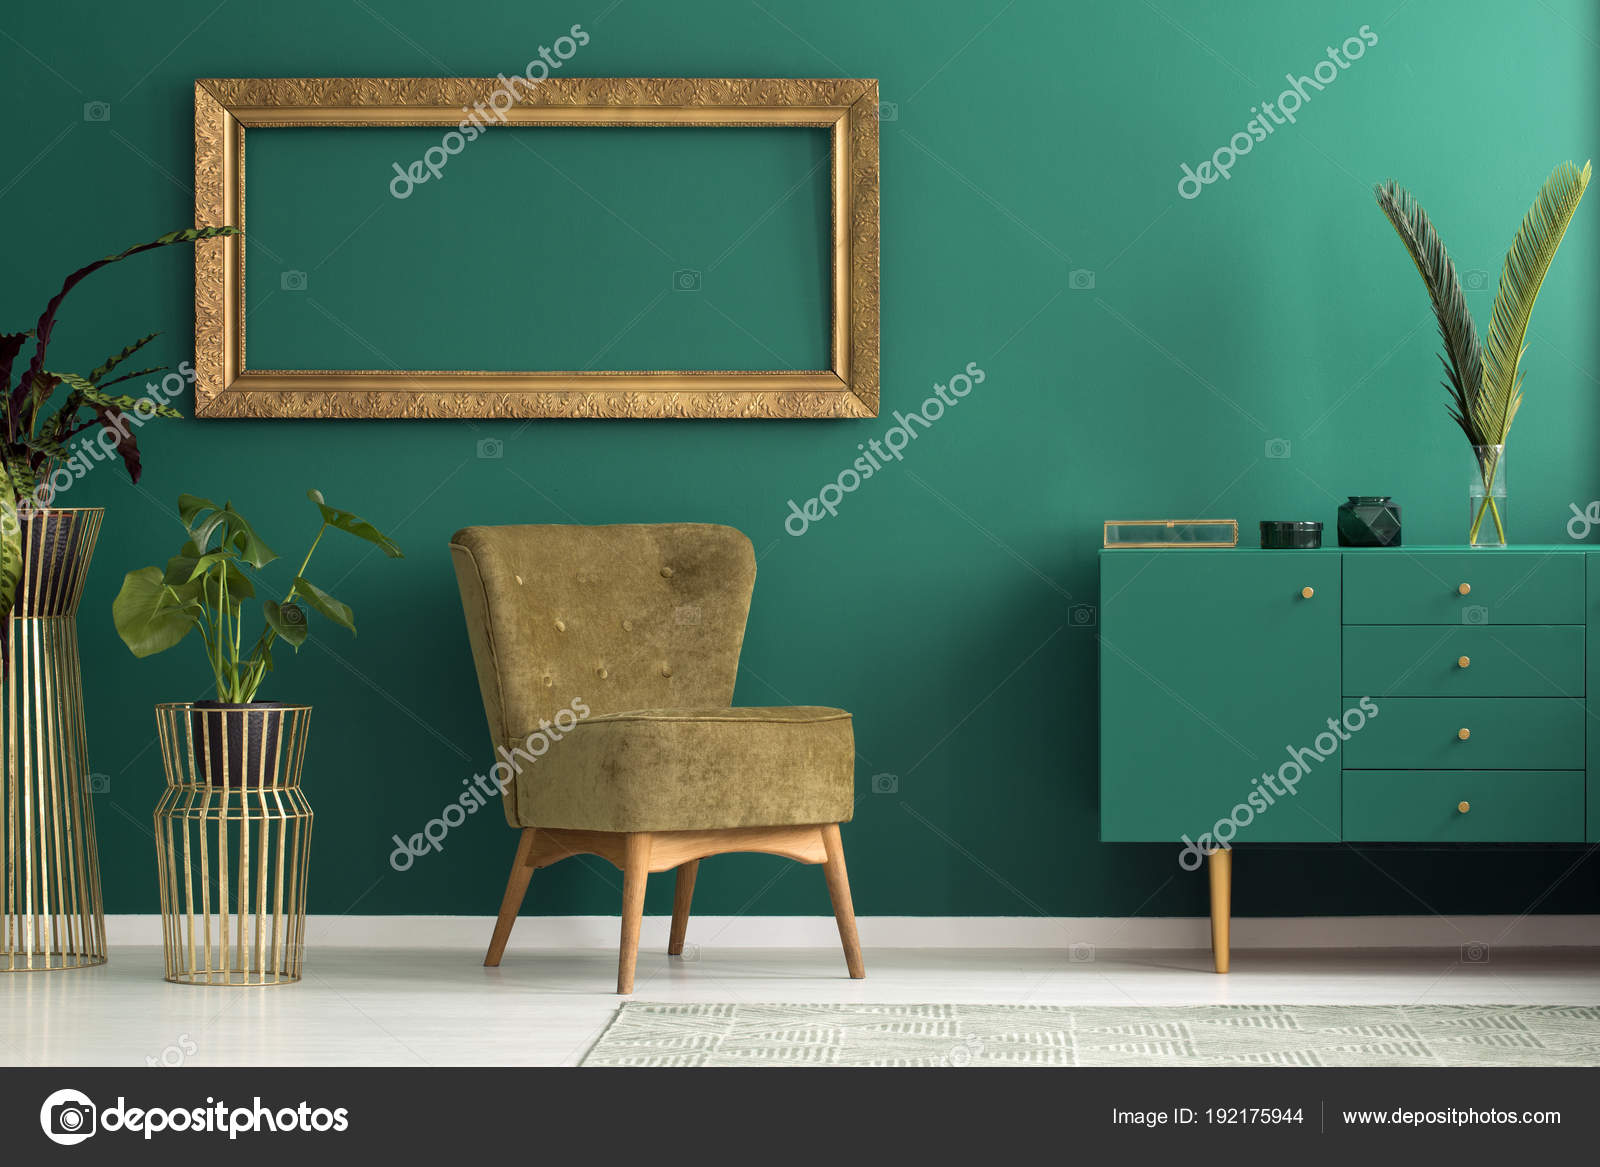 Petrol / Sideboard Im Luxuriösen Interieur U2014 Stockfoto